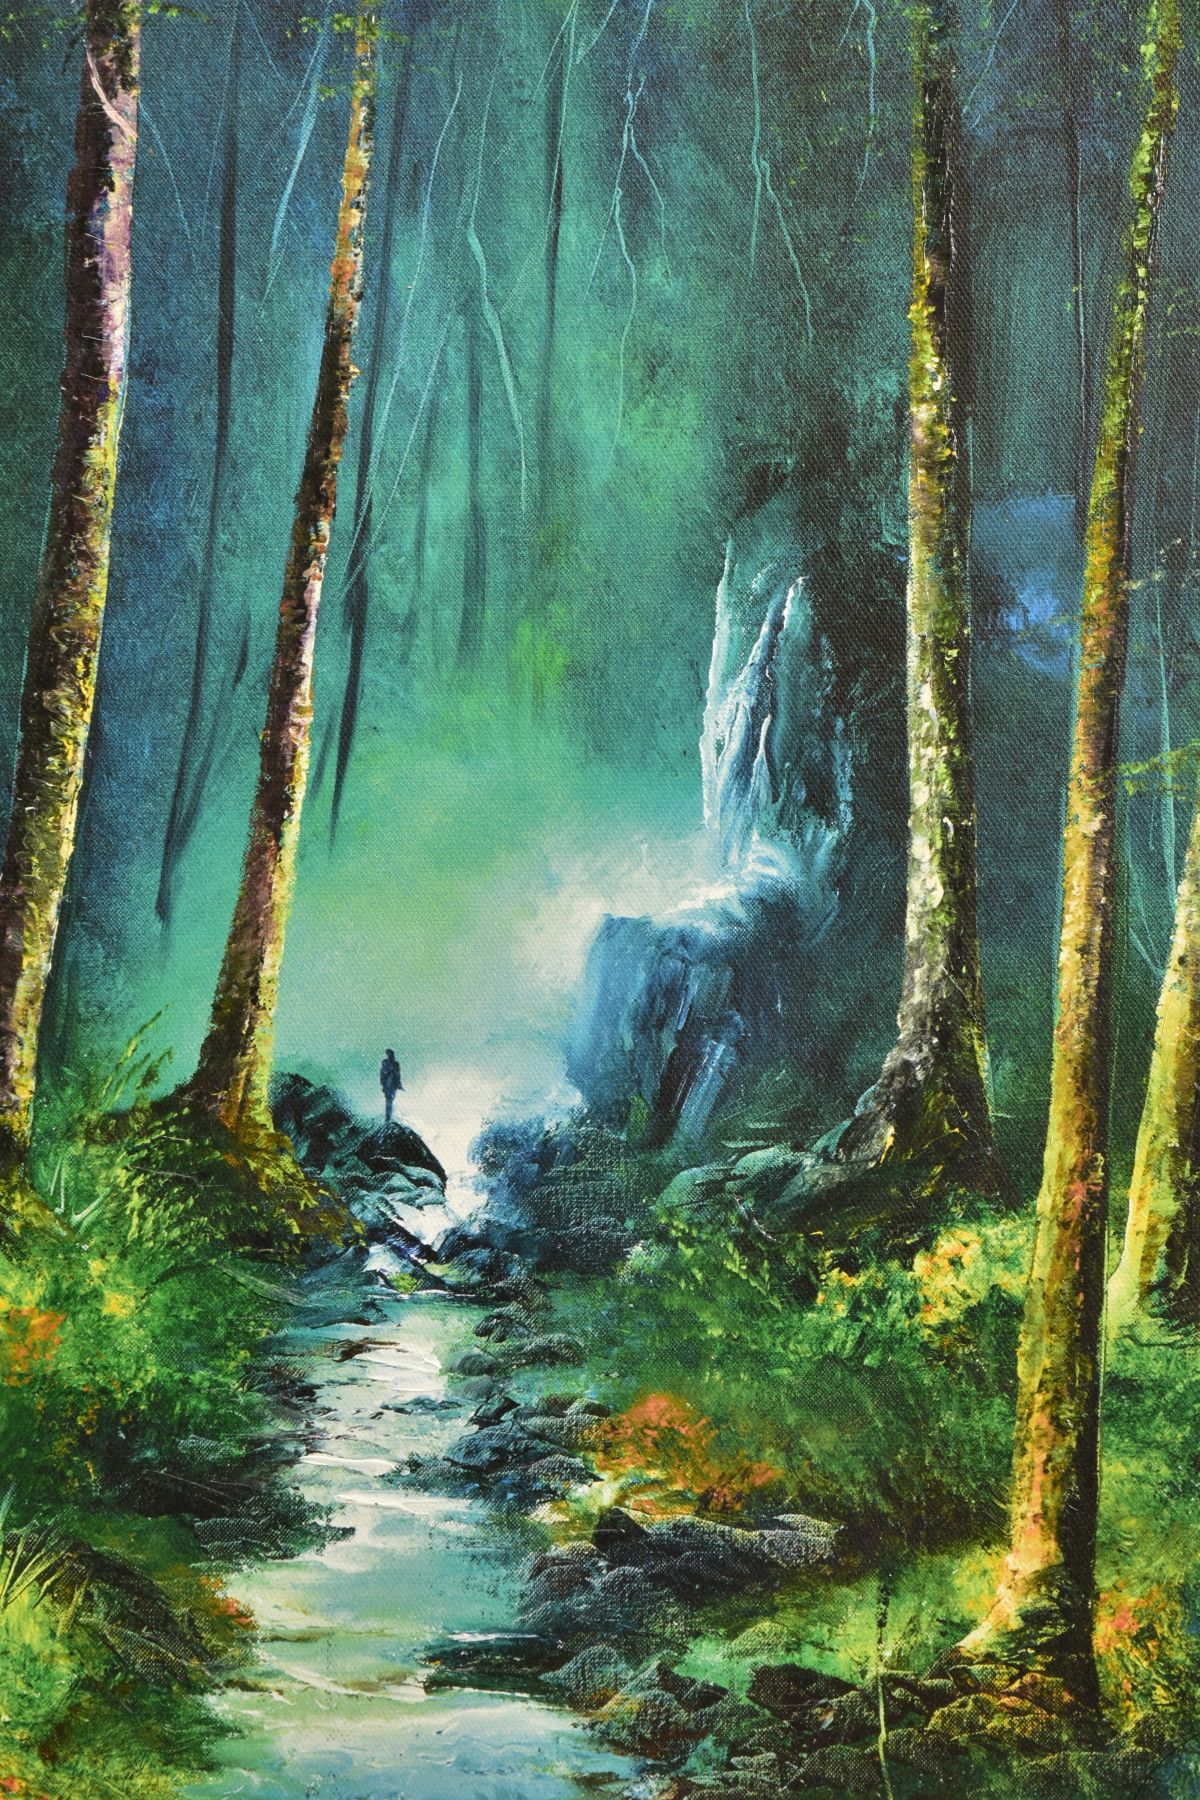 PHILIP GRAY (IRISH 1959) 'FOREST OF LIGHT' a woodland landscape with waterfall and stream, limited - Image 2 of 7